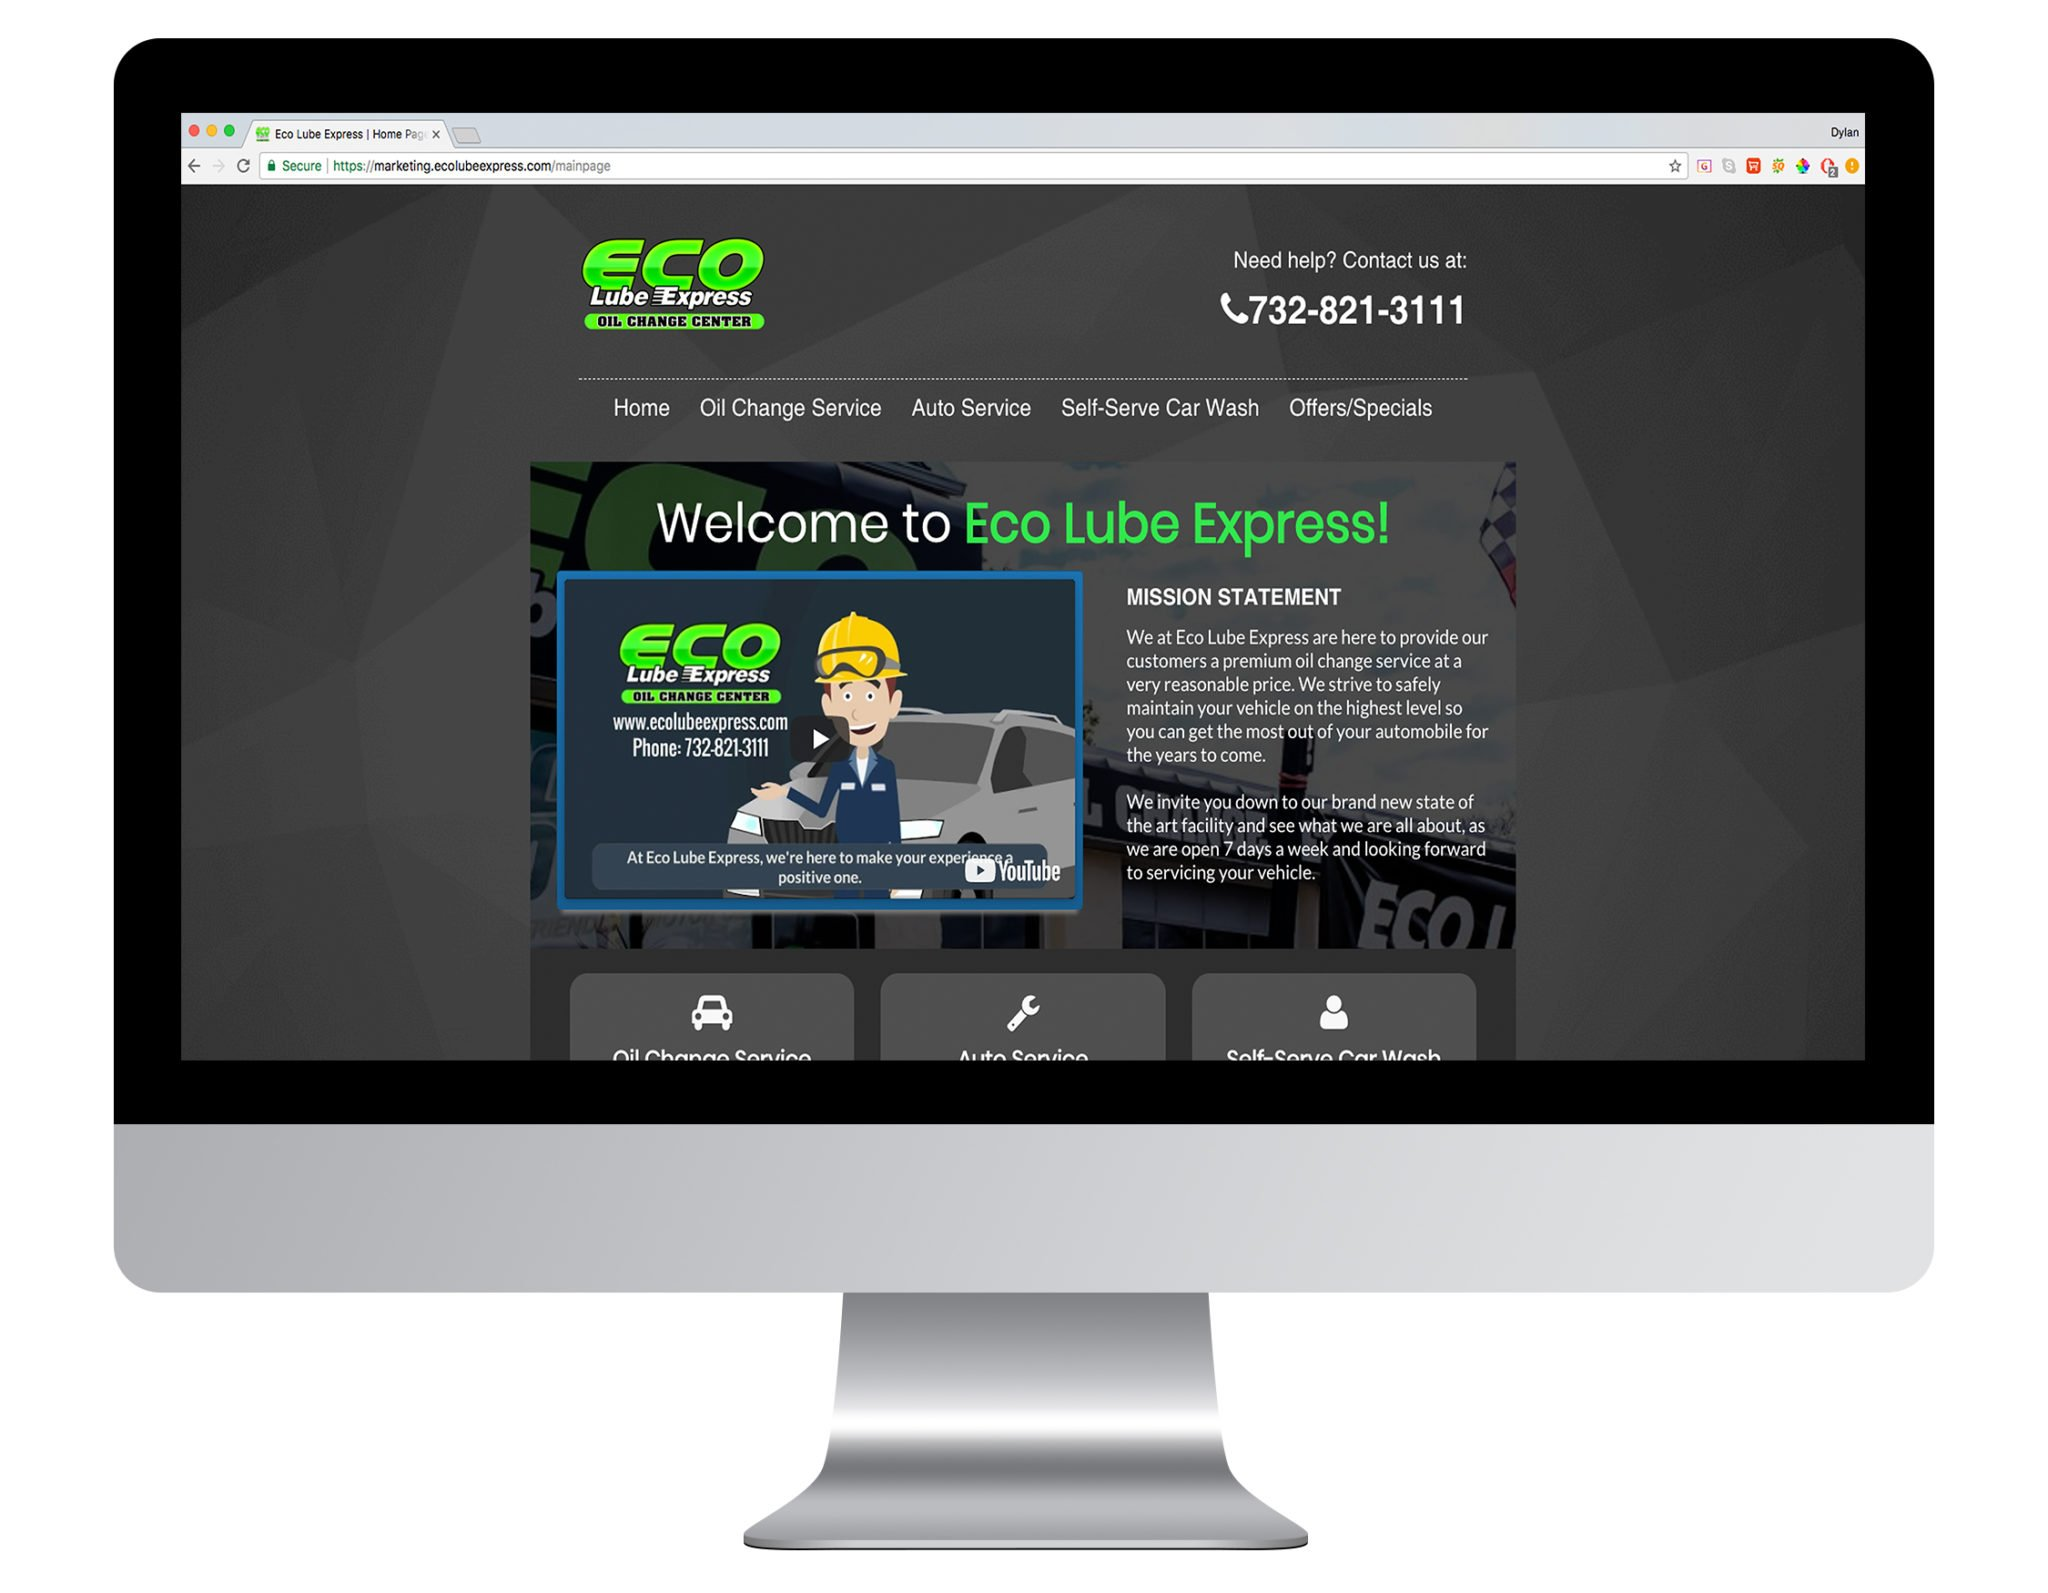 Web Design Portfolio Sample - Eco Lube Express